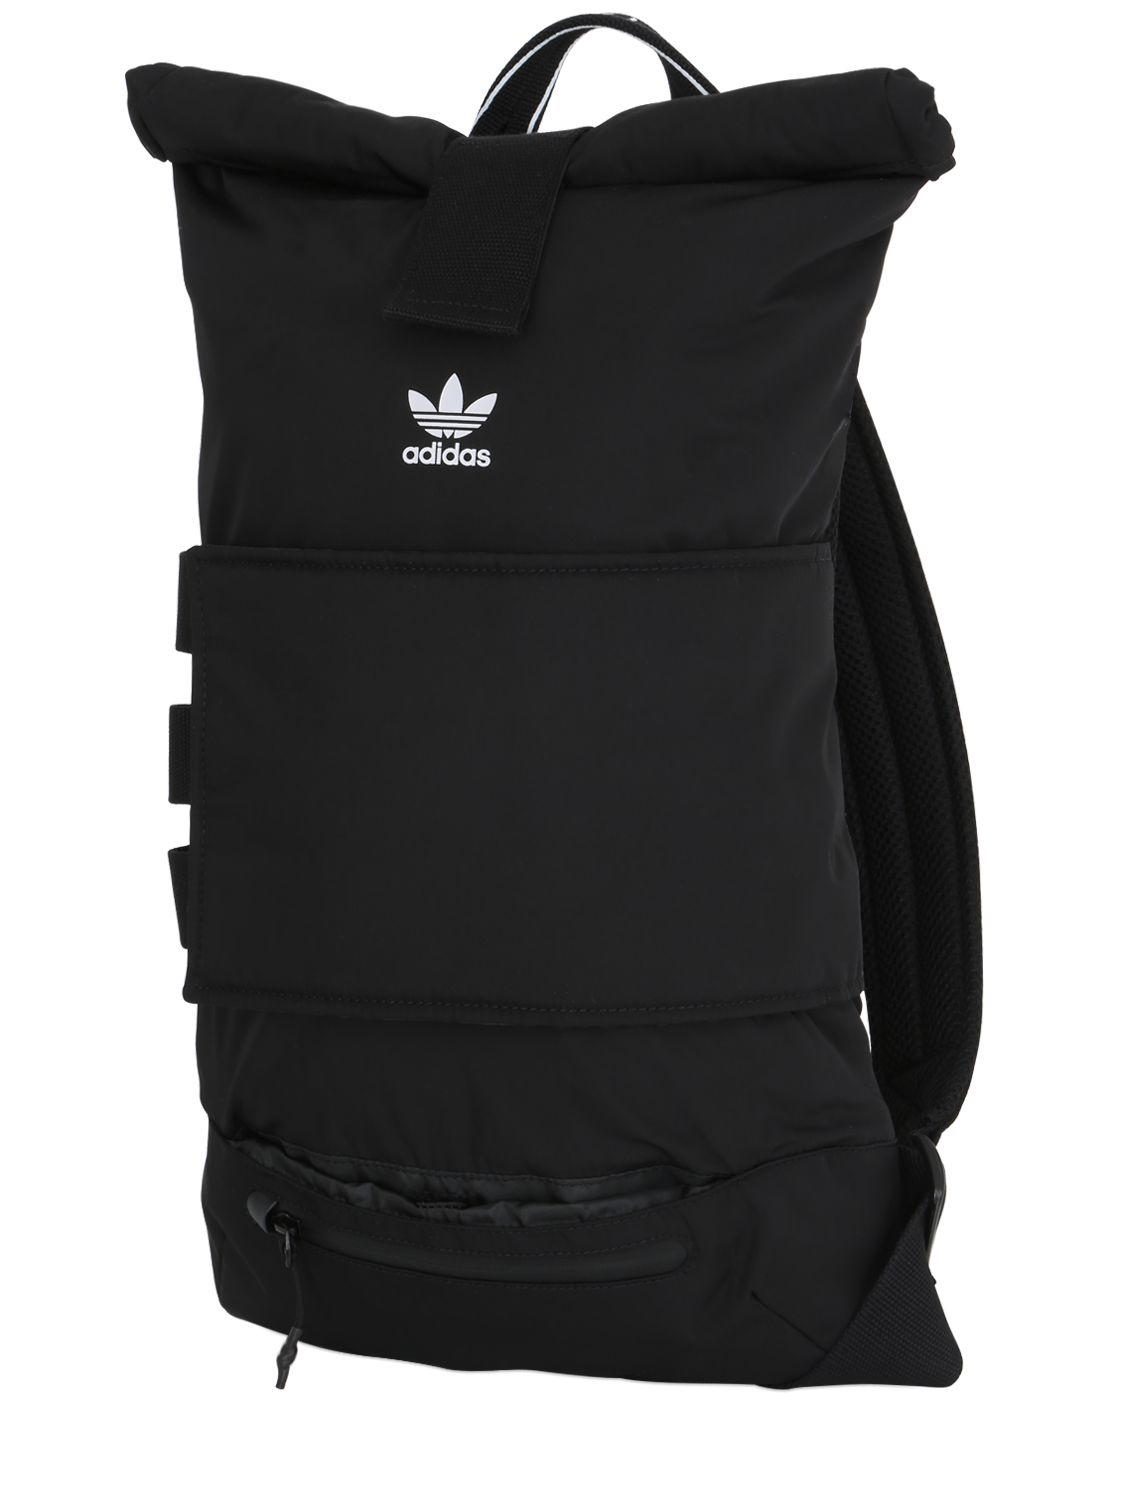 Adidas Originals Nmd Nylon Roll Top Backpack In Black For